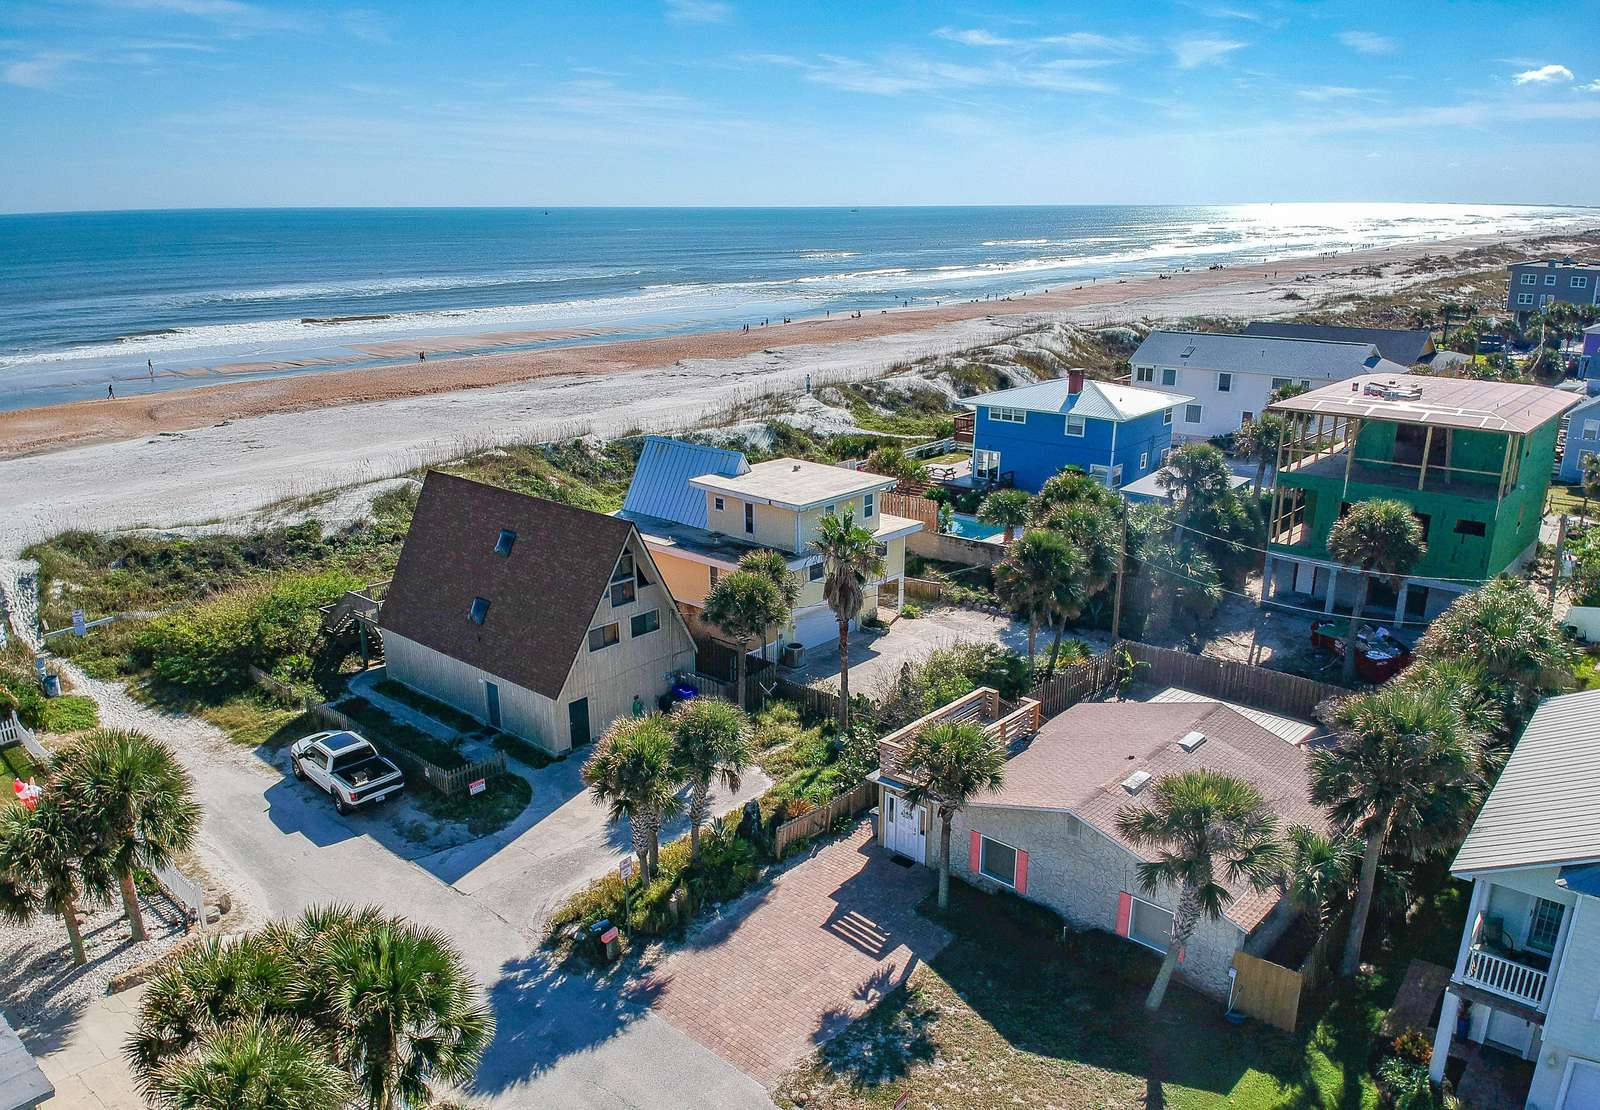 Aerial View of Tiki Hut and the Beach!